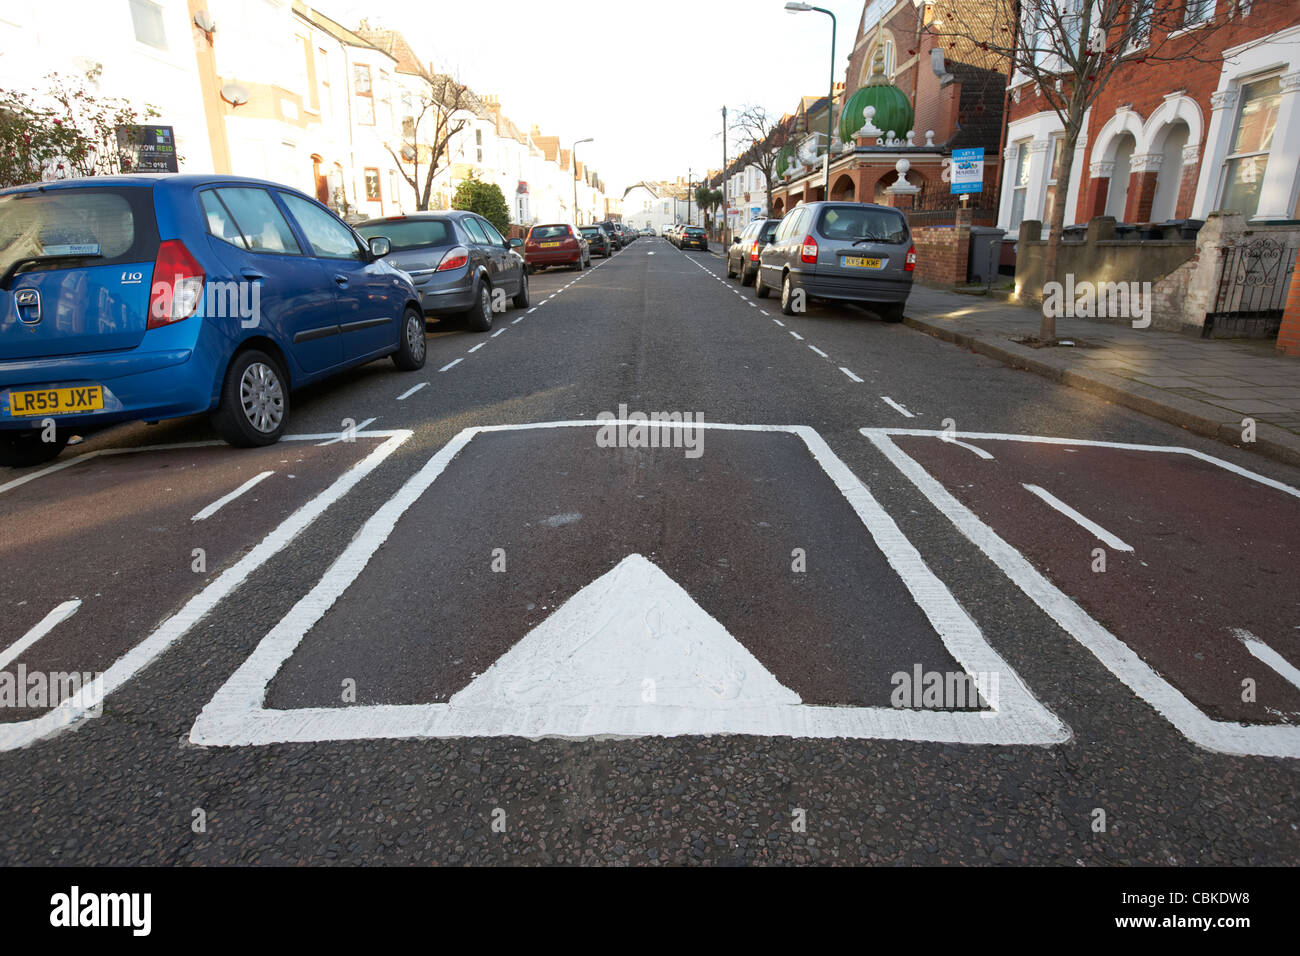 traffic calming measures sleeping policemen speed bumps in a residential street north london england united kingdom - Stock Image